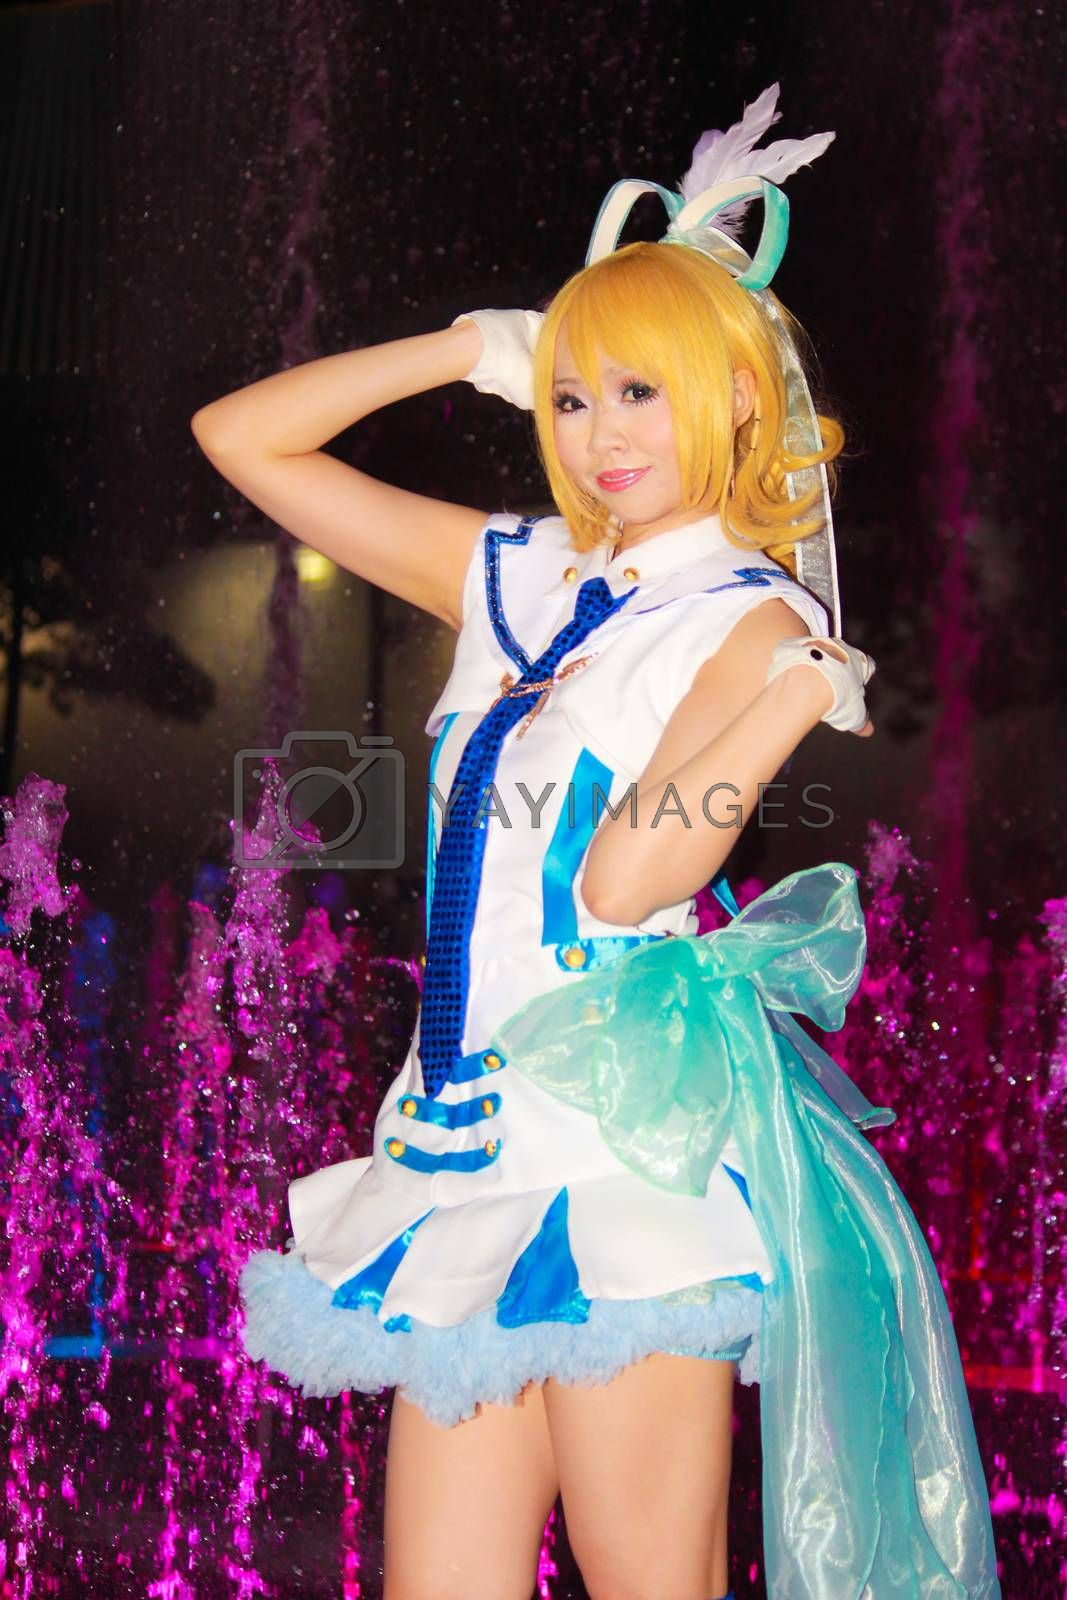 Royalty free image of Cosplay 125 by redthirteen